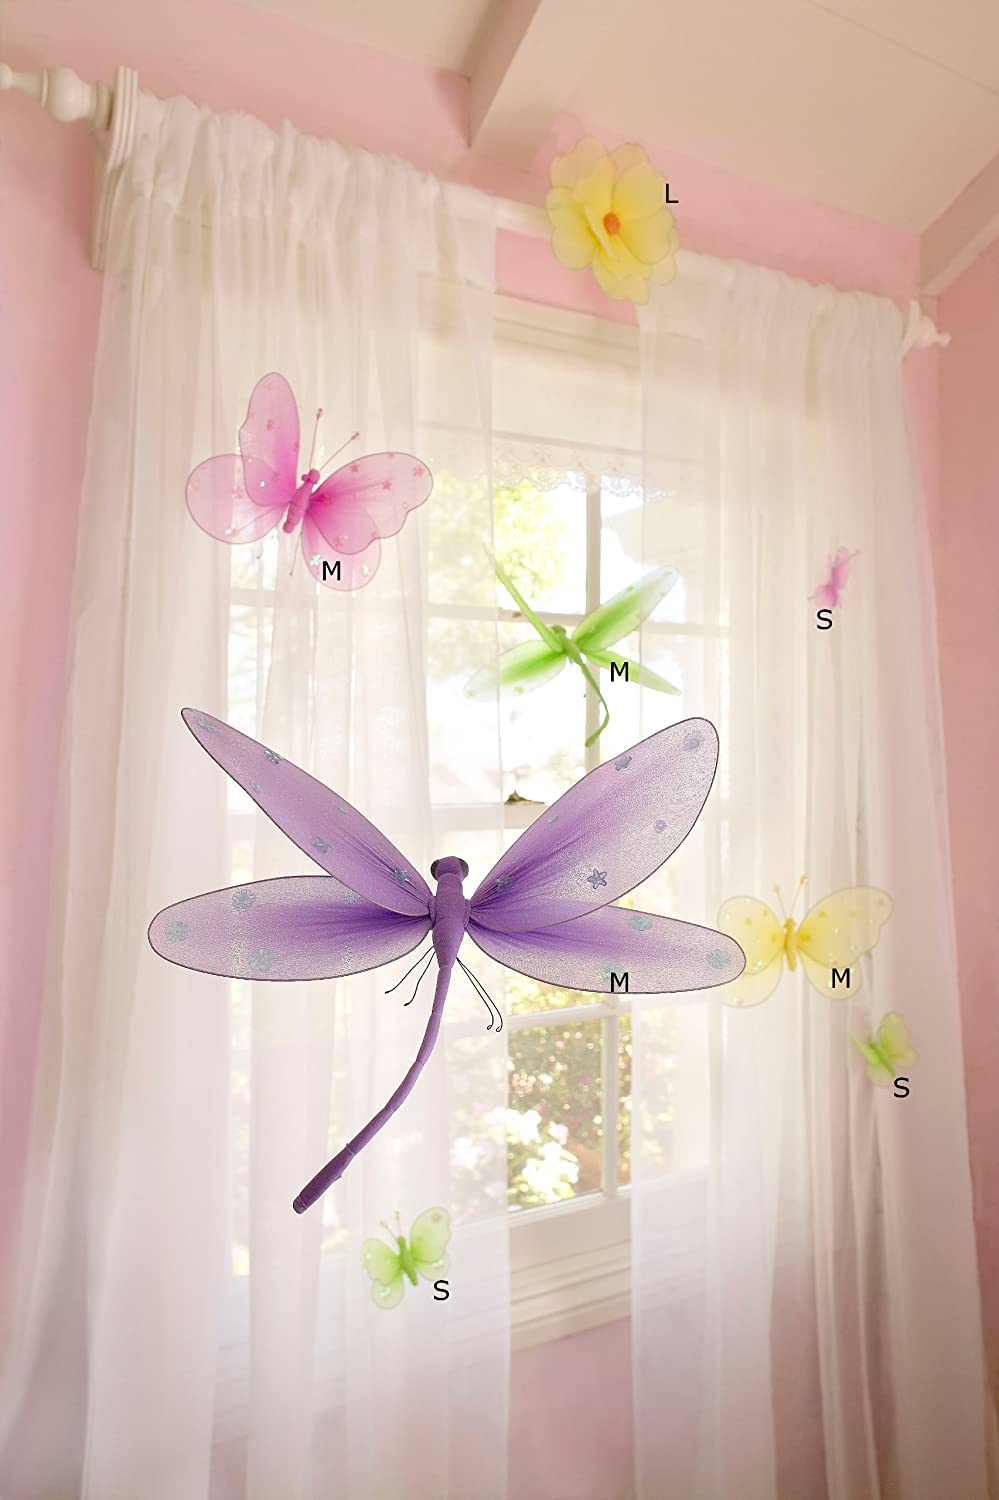 Dragonflies Wall Decor Amazoncom Hanging Dragonfly 9 Medium Pink Nylon Dragonflies